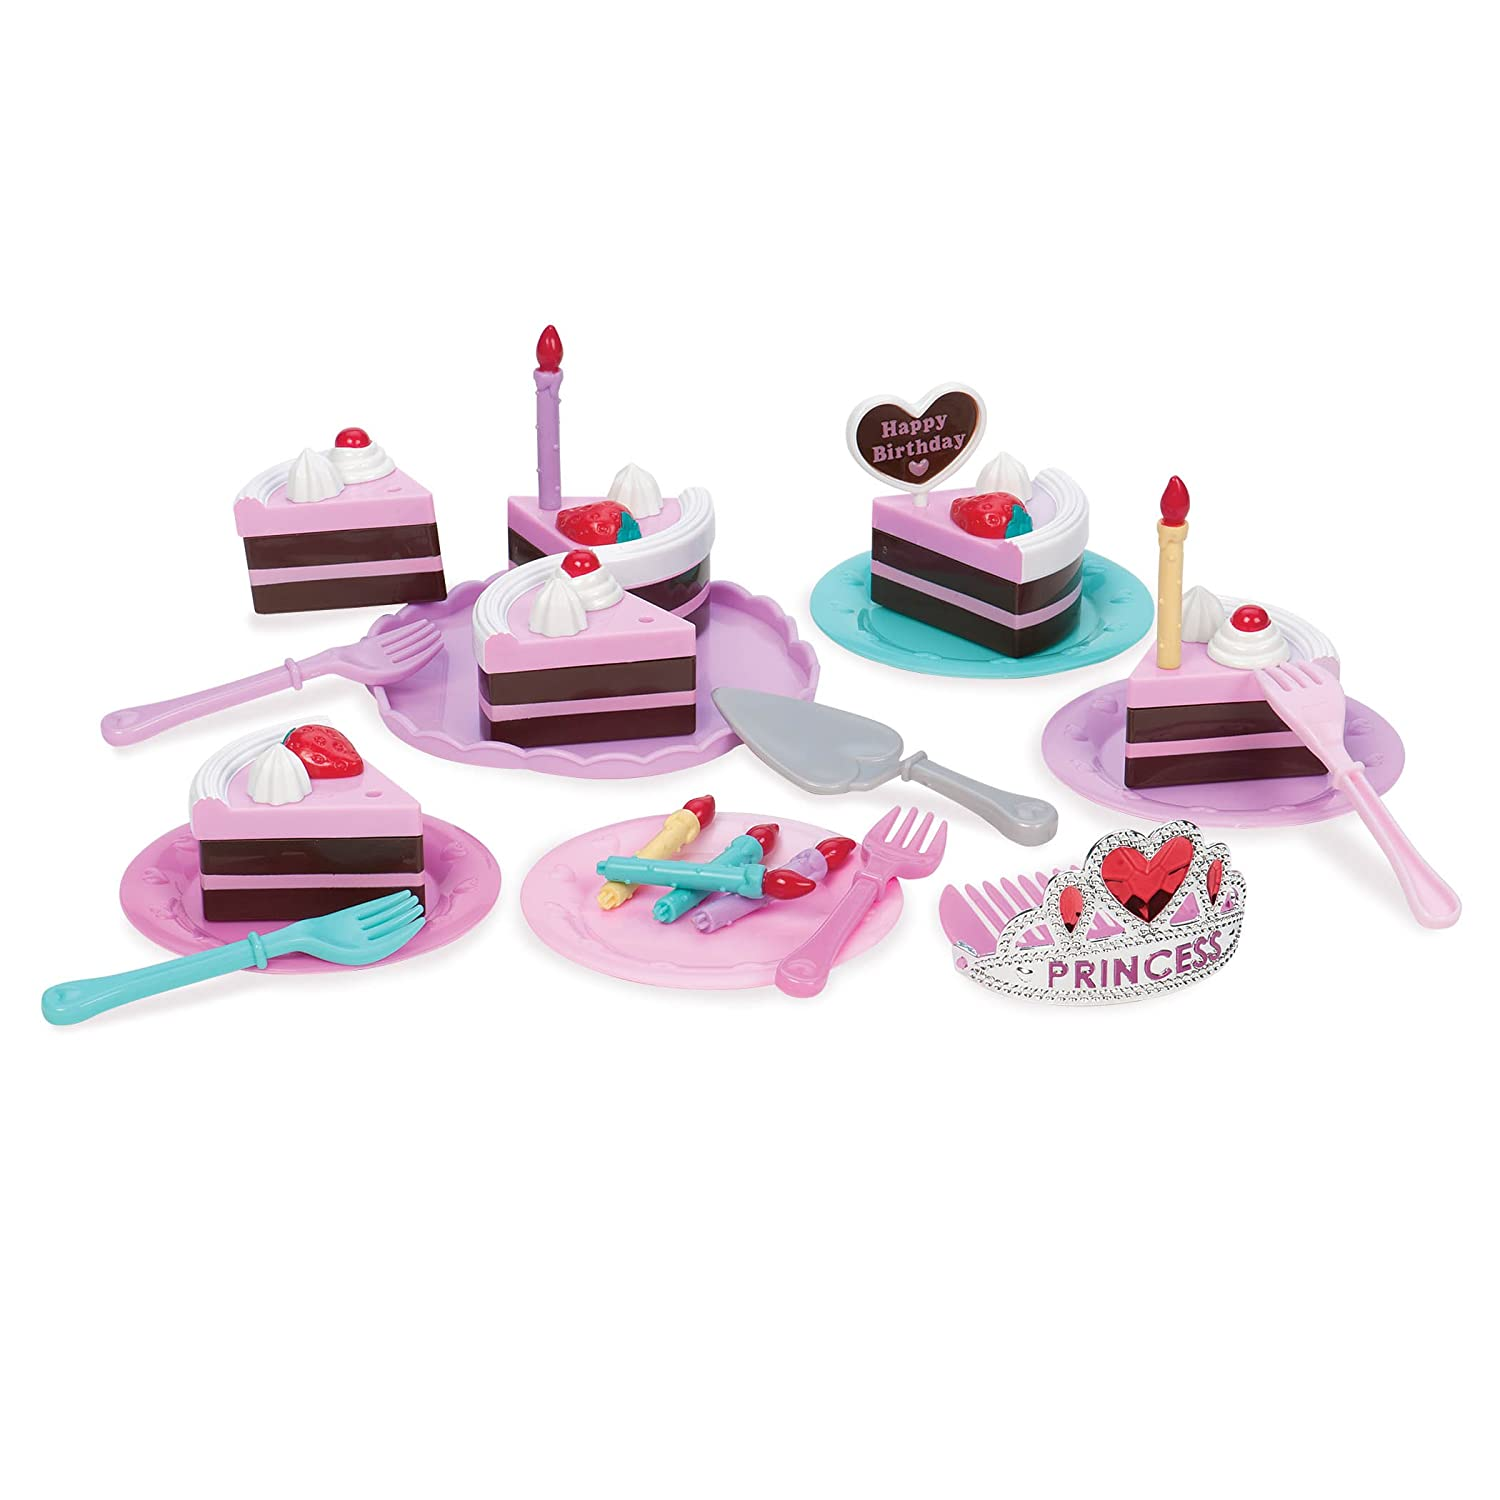 Play Circle by Battat Princess Birthday Party – Pretend Play Birthday Cake with Candles, Dishes, & Princess Tiara – Play Food Sets for Toddlers Age 3 Years & Up (Pack of 24)